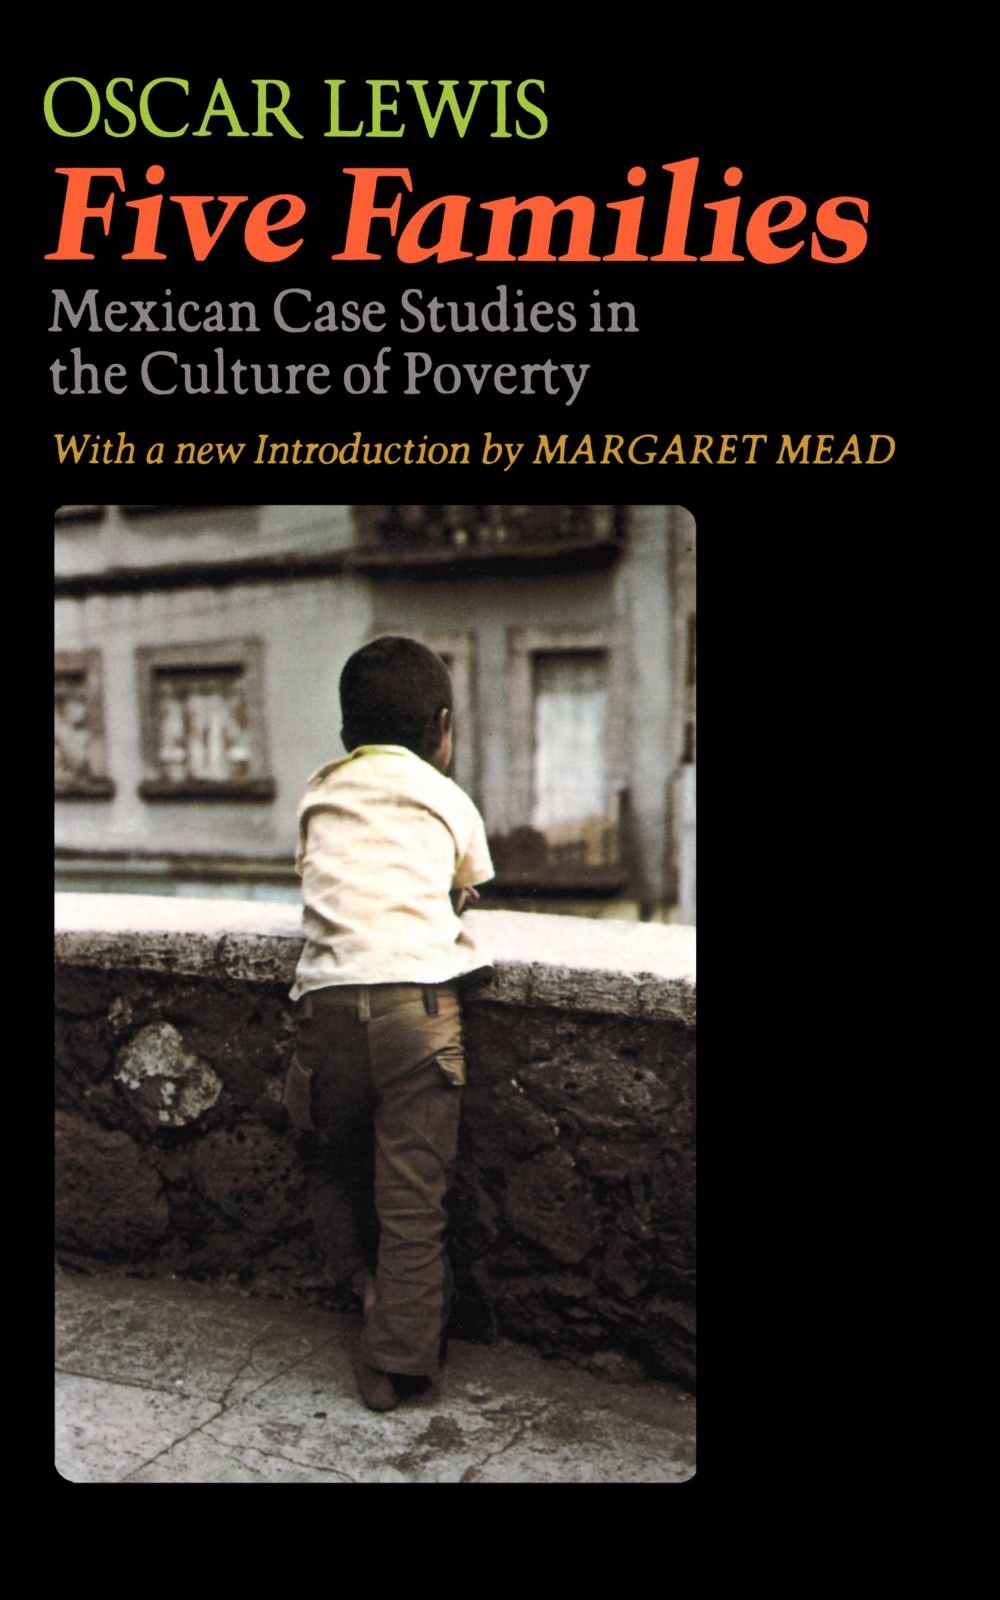 five families mexican case studies in the culture of poverty five families mexican case studies in the culture of poverty oscar lewis ruth m lewis 9780465097050 books amazon ca